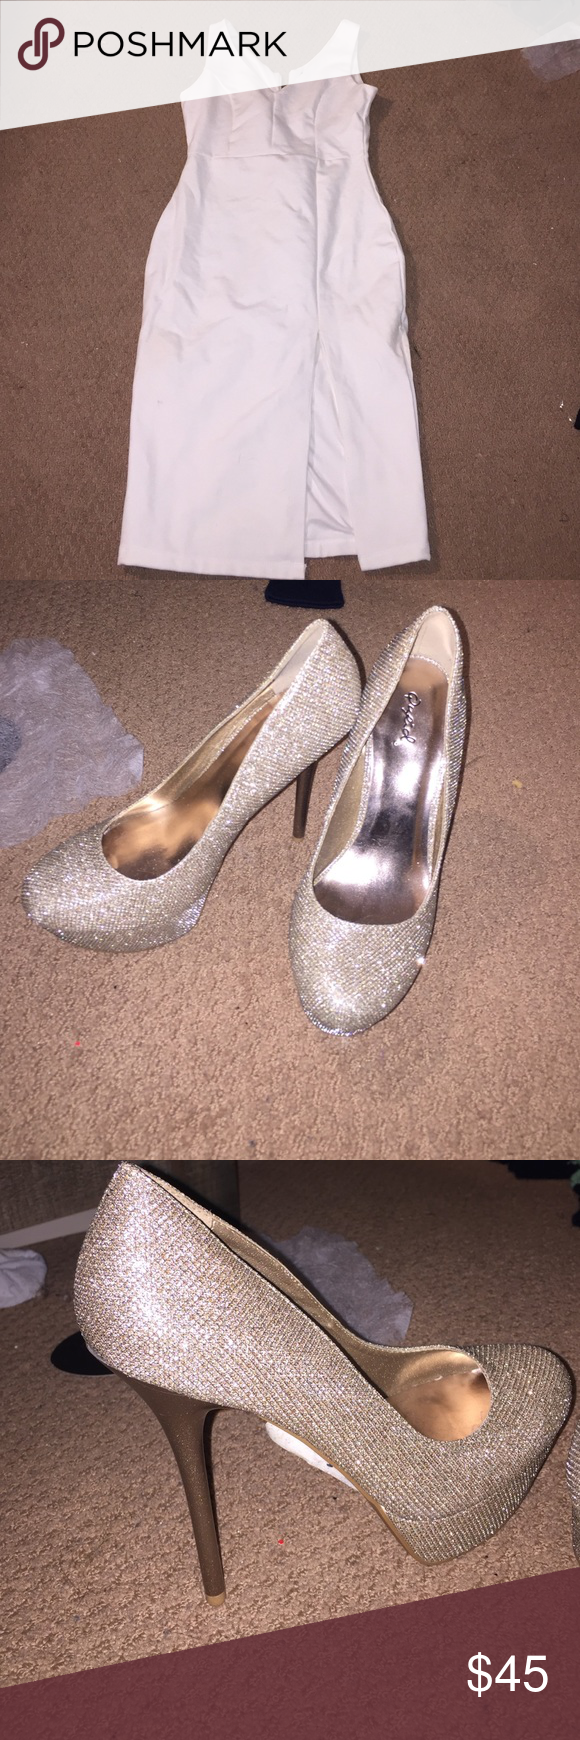 Lulu's dress and Gold heels! Can be purchased separate! Shoes are a size 8.5 Lulu's Dresses